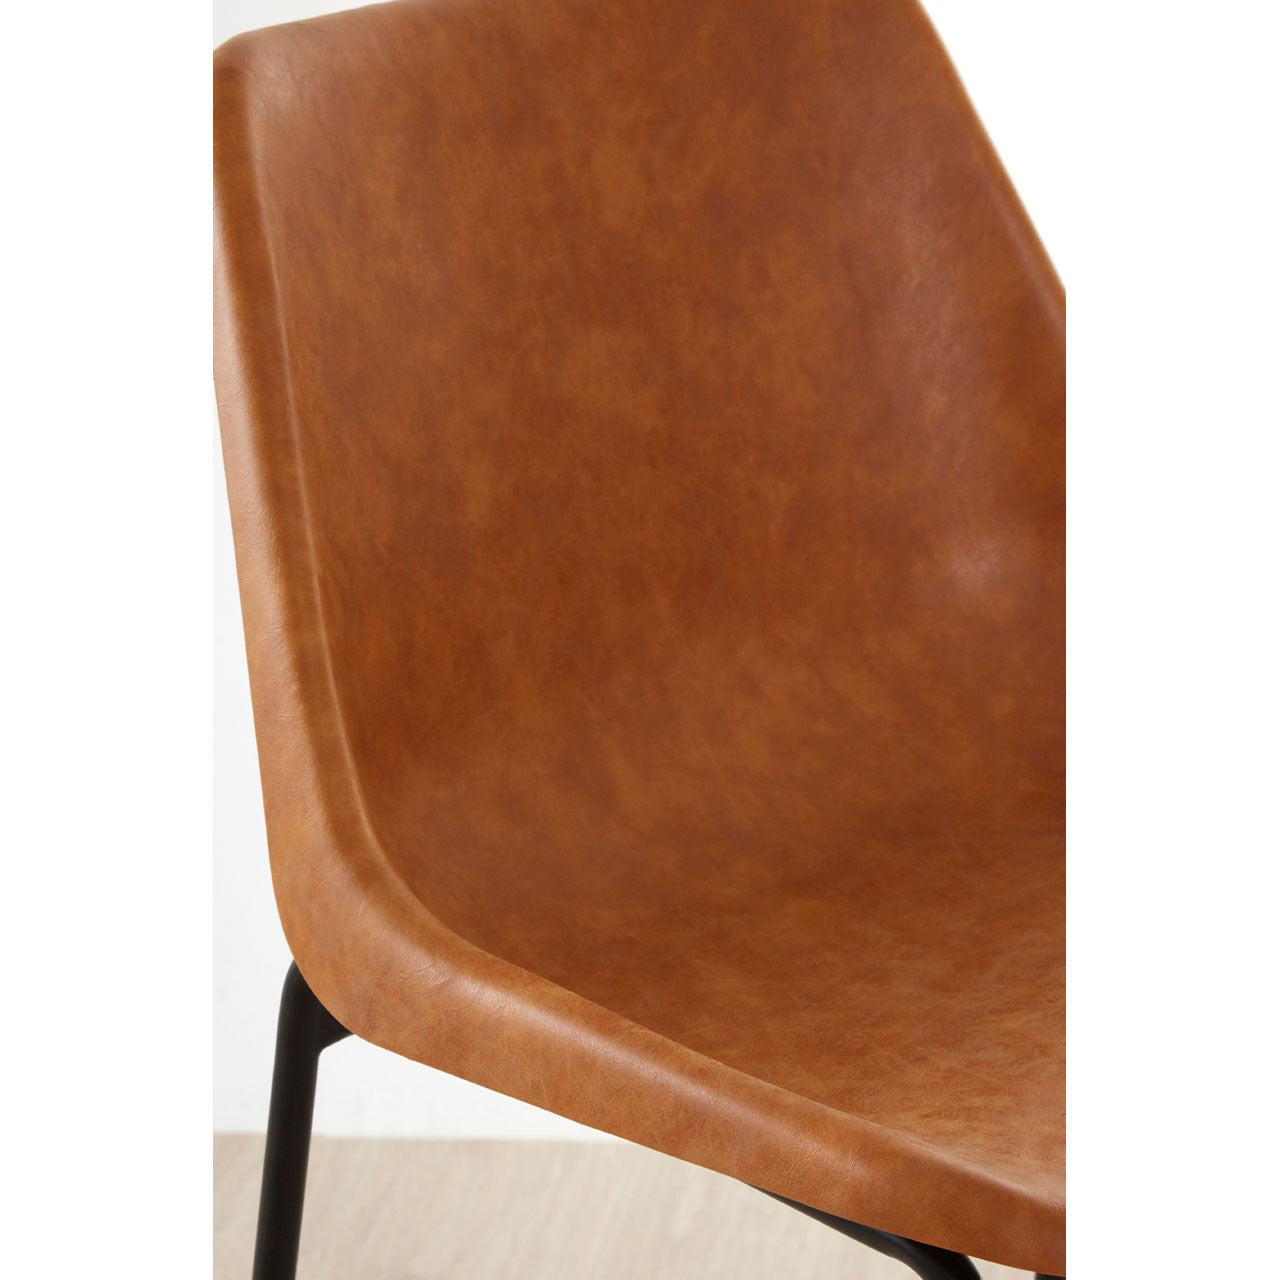 Dalston Bar Stool (Camel) - Close